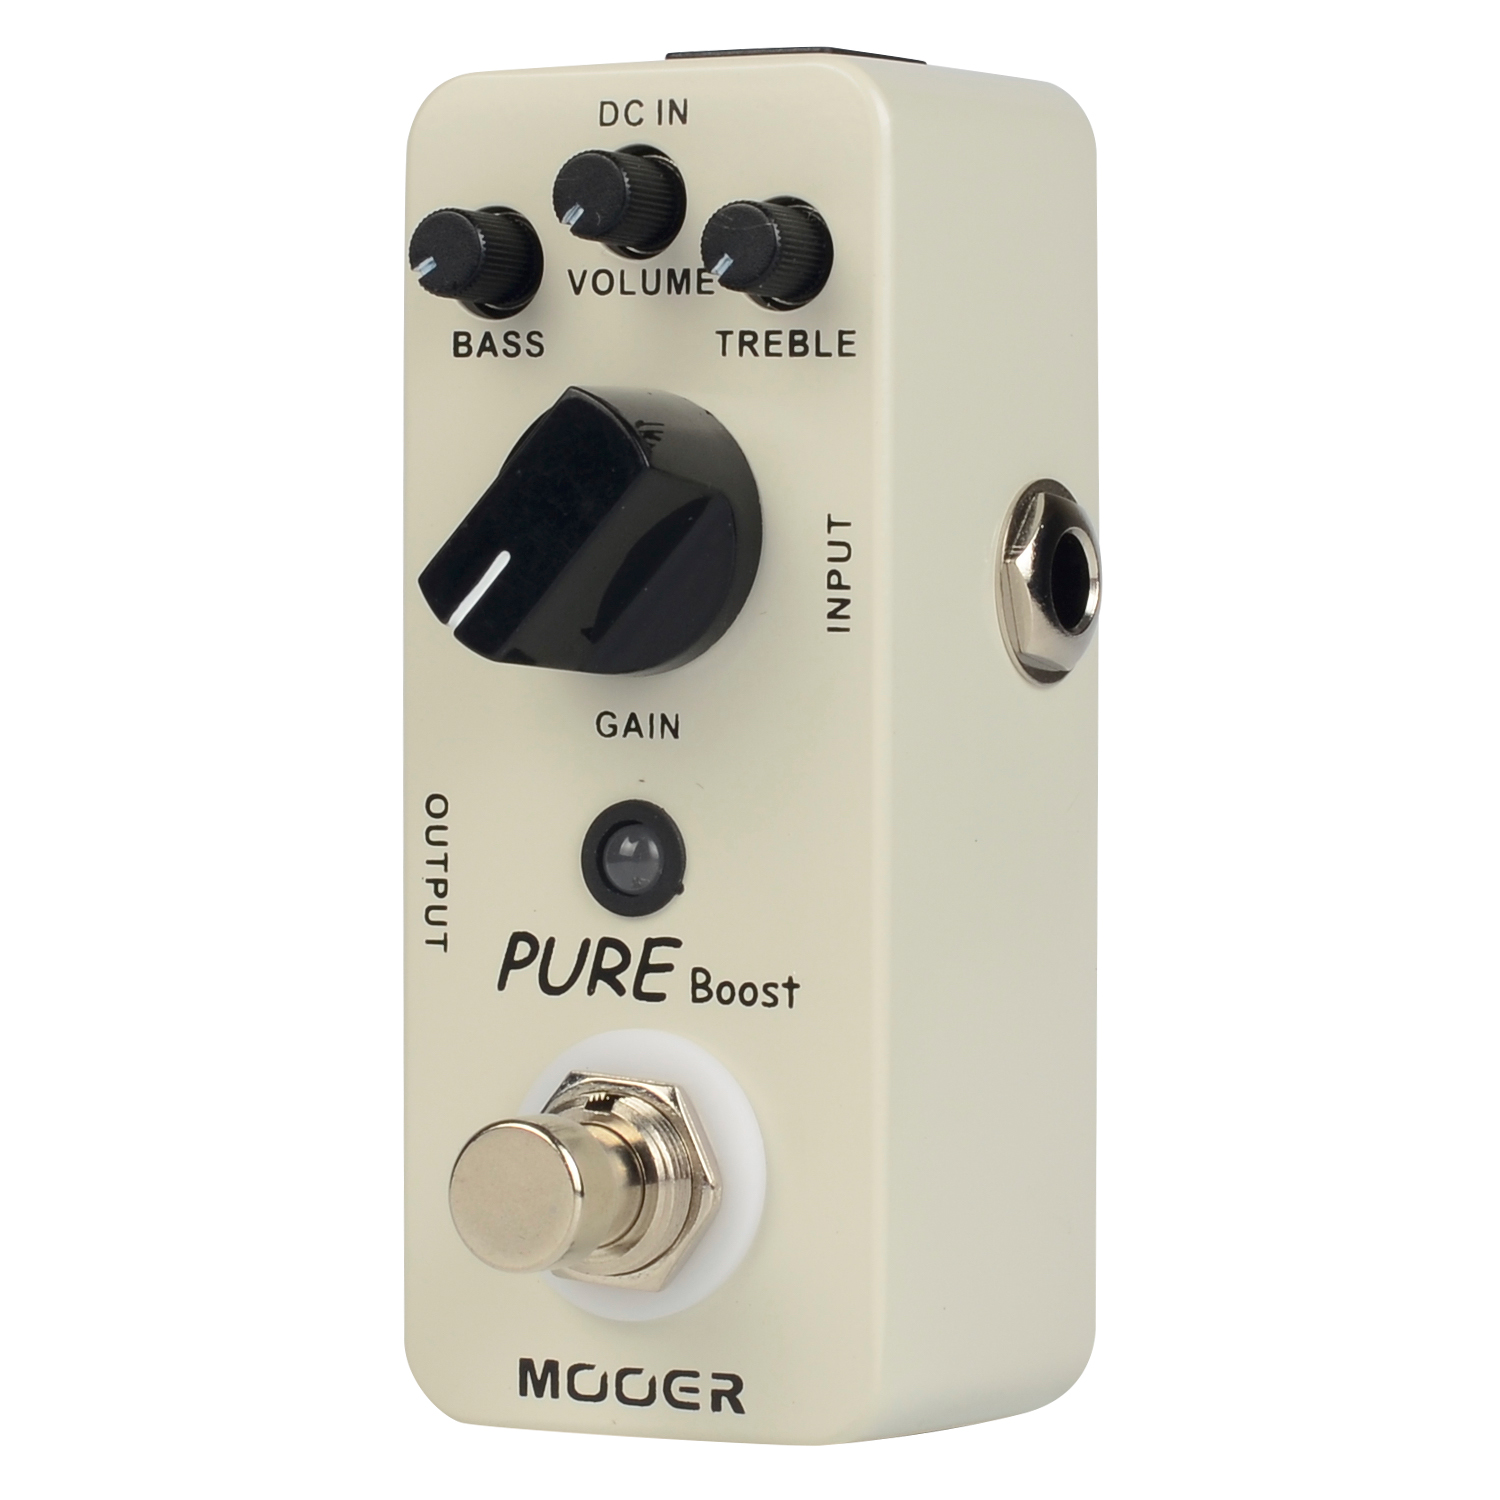 Mooer Pure Boost Guitar Effect Pedal Micro Series 20 dB Clean Boost True Bypass MBT2 mooer flex boost guitar pedal with wide gain range boost enough working along as a best overdrive